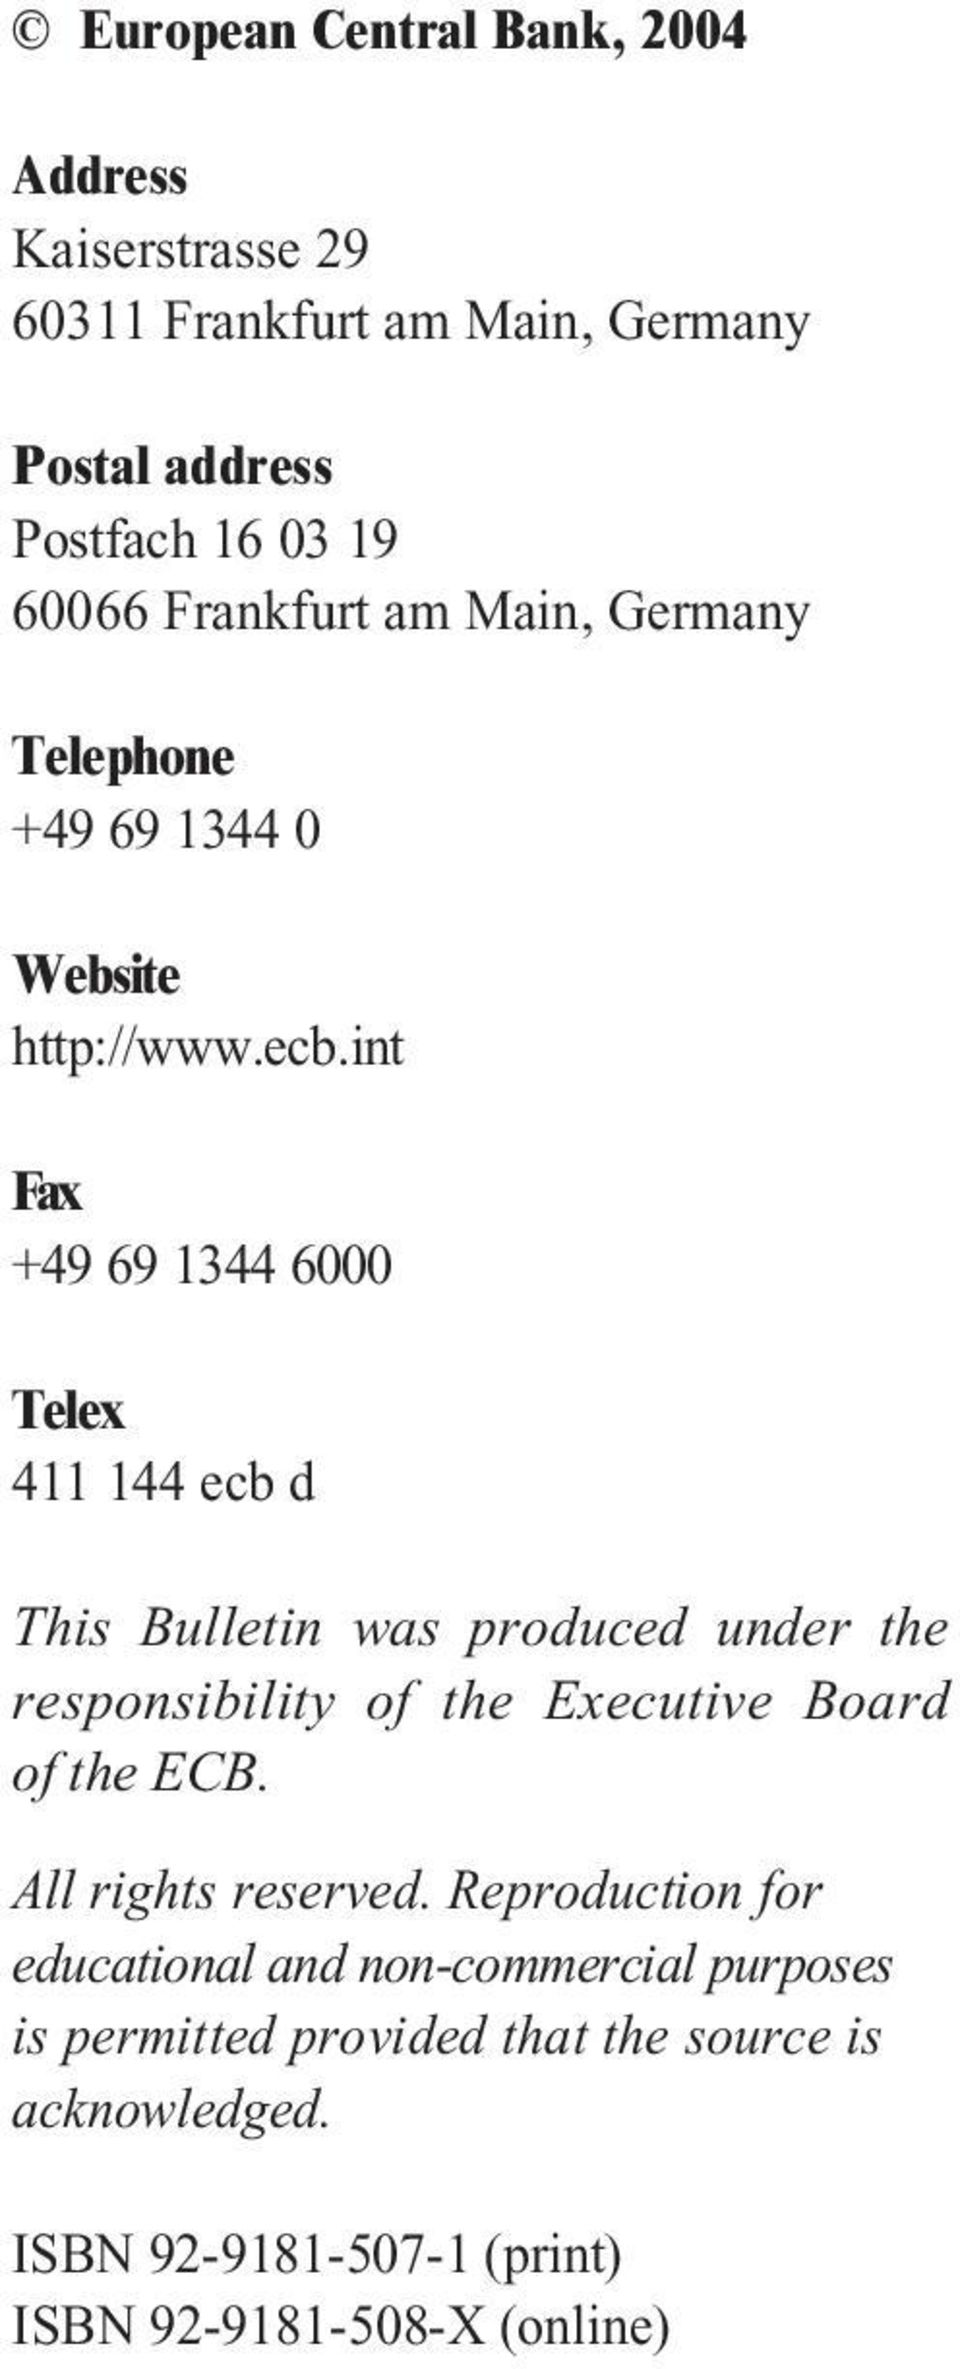 int Fax +49 69 1344 6000 Telex 411 144 ecb d This Bulletin was produced under the responsibility of the Executive Board of the